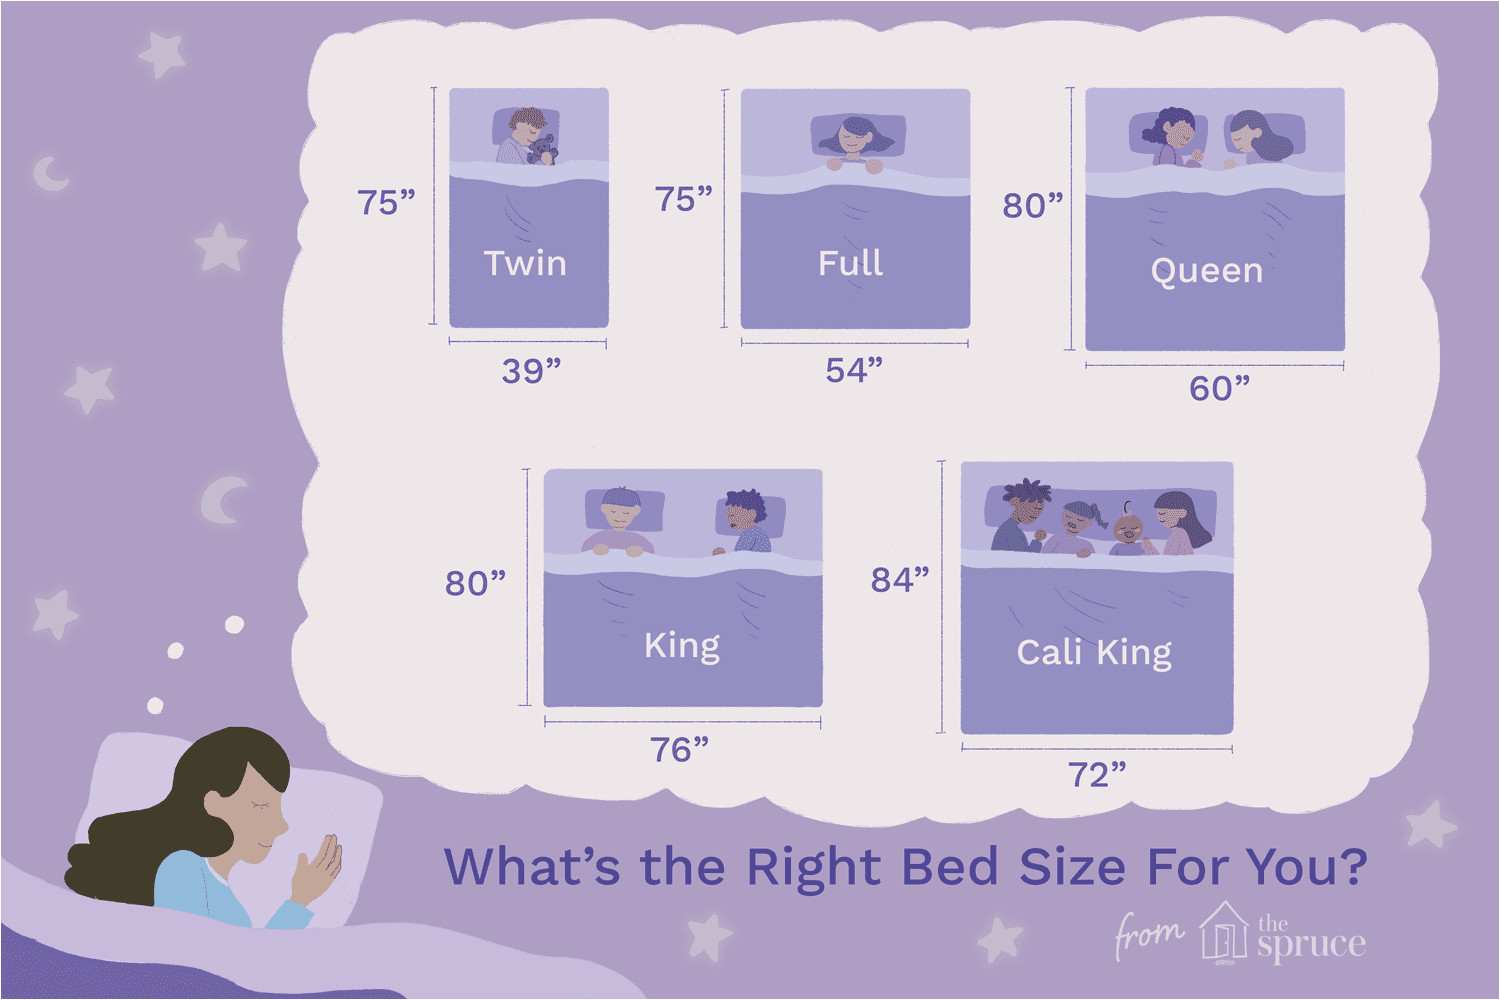 spr 1976223 is a twin bed right for you final1 5b0da3063de4230037256f7a png